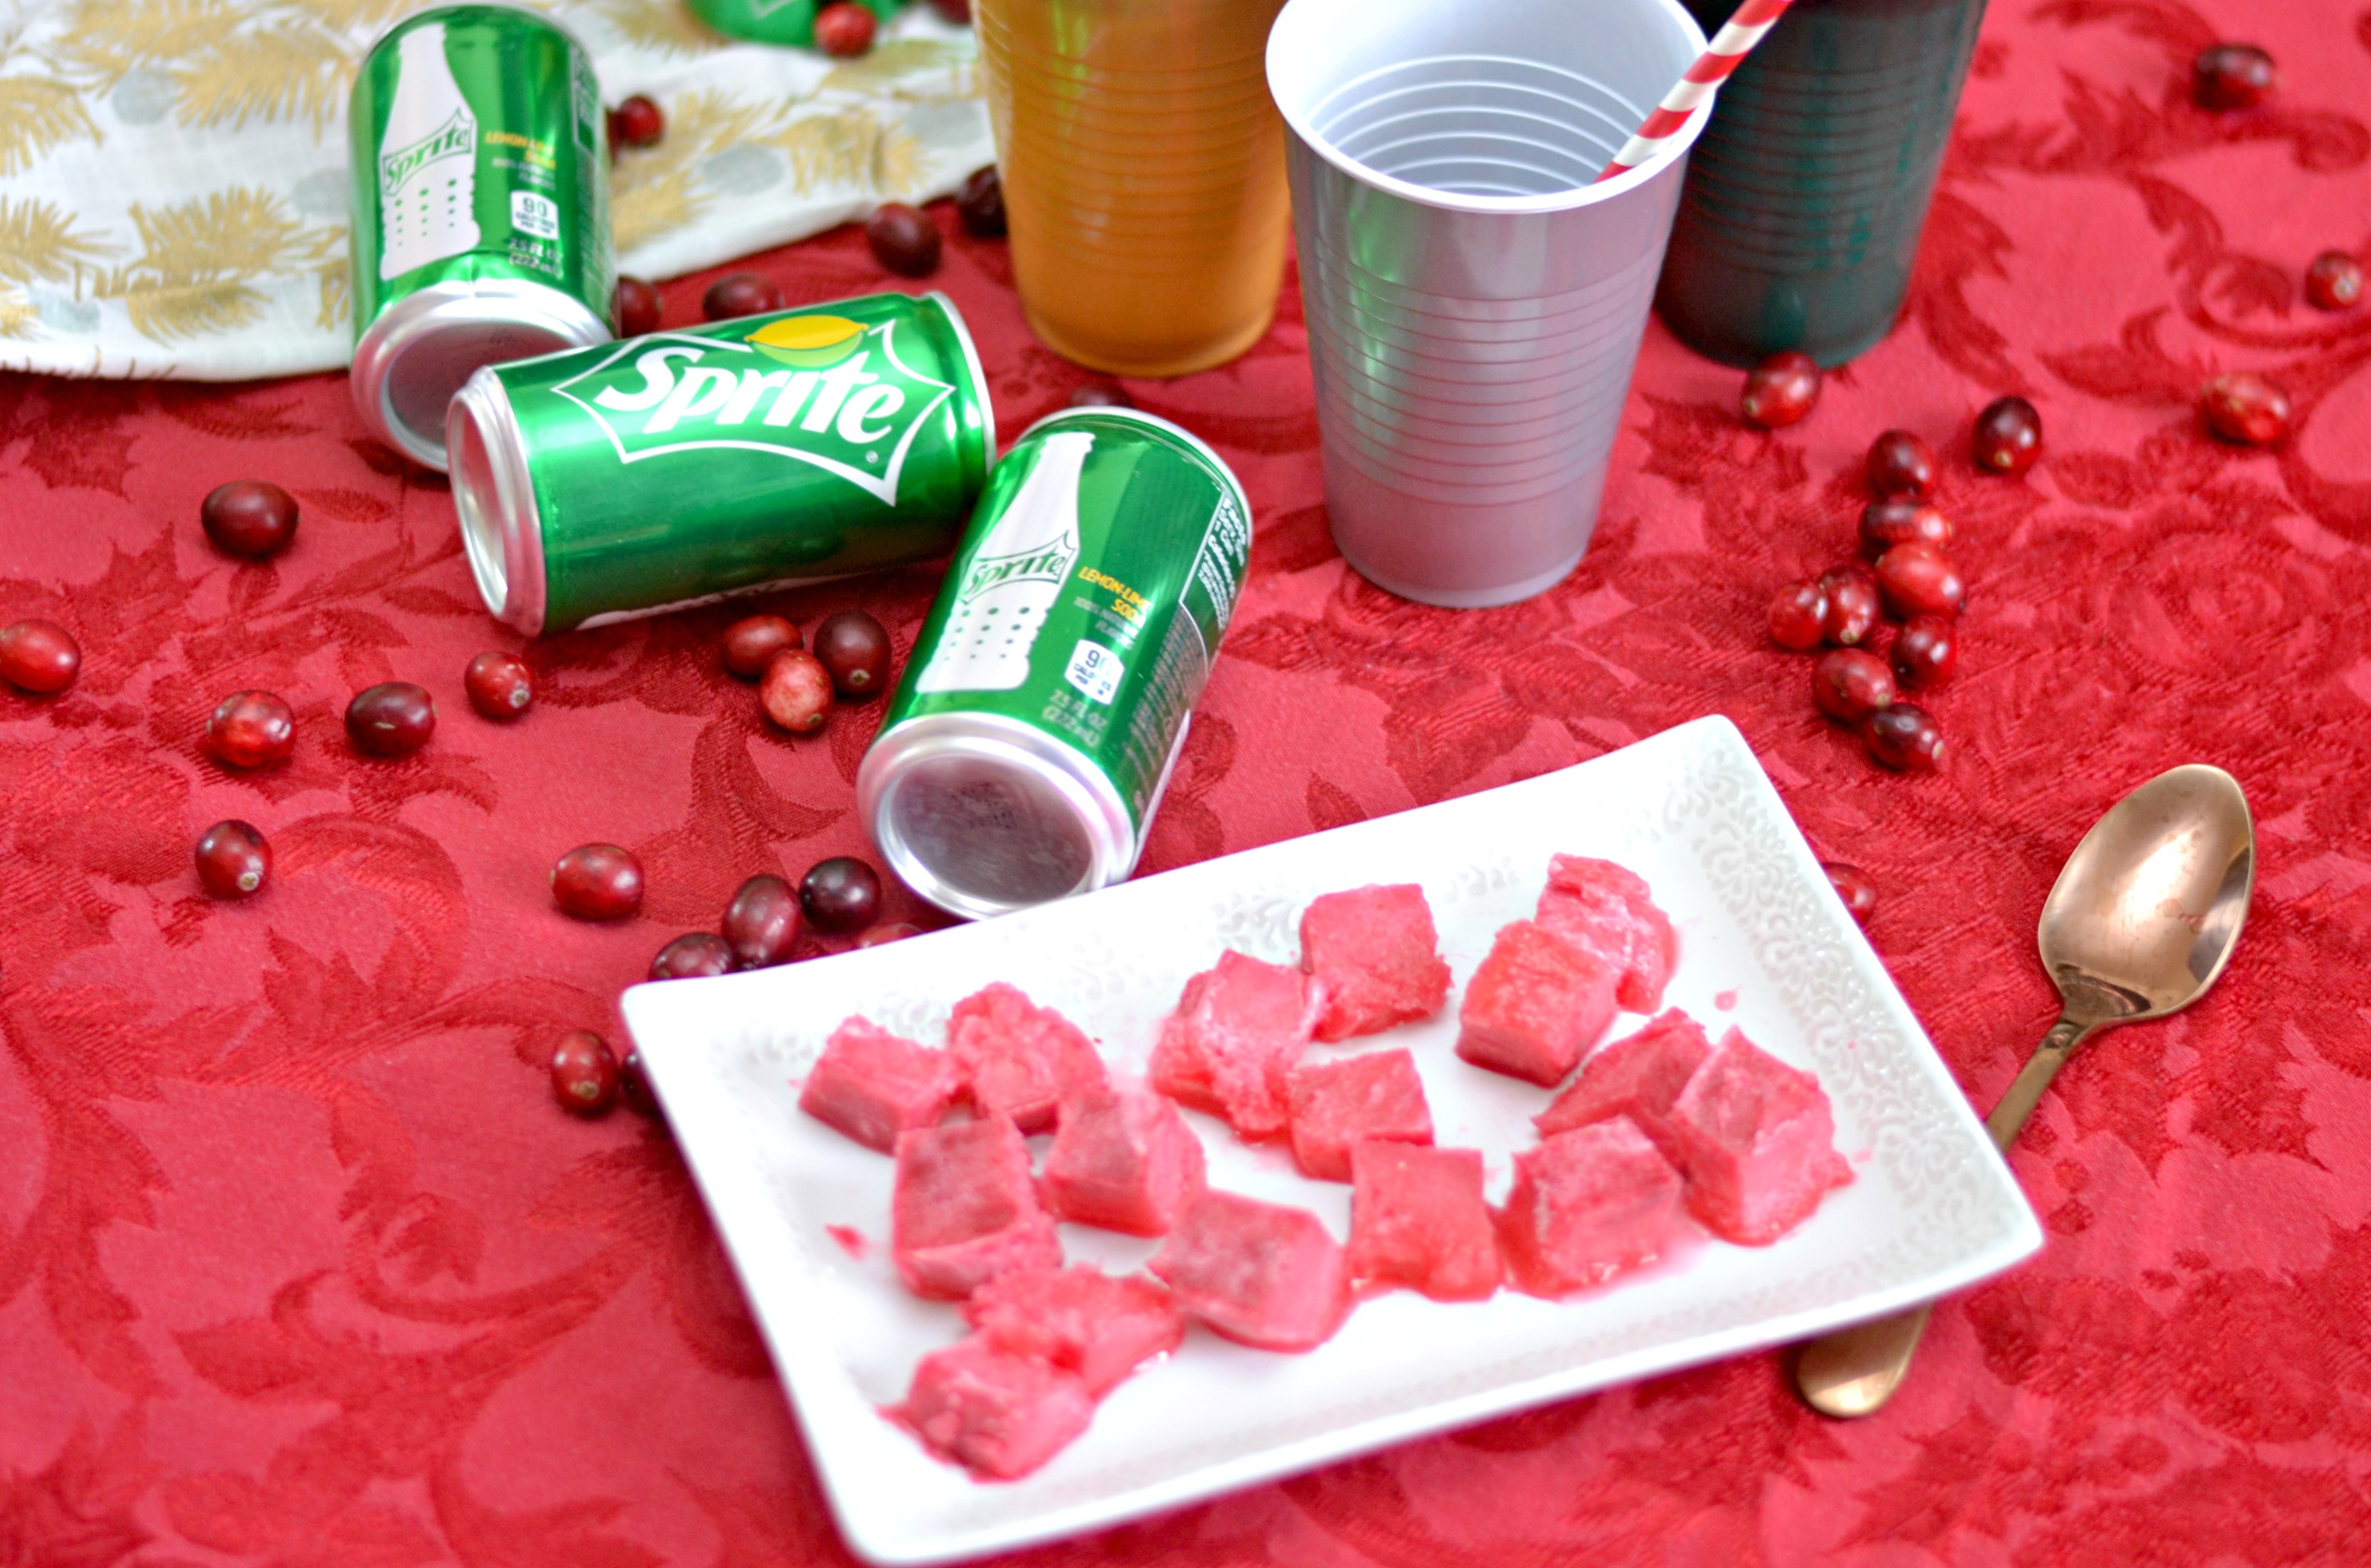 Cranberry Ice Fizzy Holiday Drink, Cranberry Ice Recipe, Cranberry Ice, Holiday drinks, cranberry holiday drinks, easy drink ideas for the holidays, winter cocktail recipes, Dress up your holiday gatherings by creating these refreshing and family tradition inspired cranberry ice fizzy drinks.  Combining a family favorite recipe into a delicious drink has our guests asking for more.